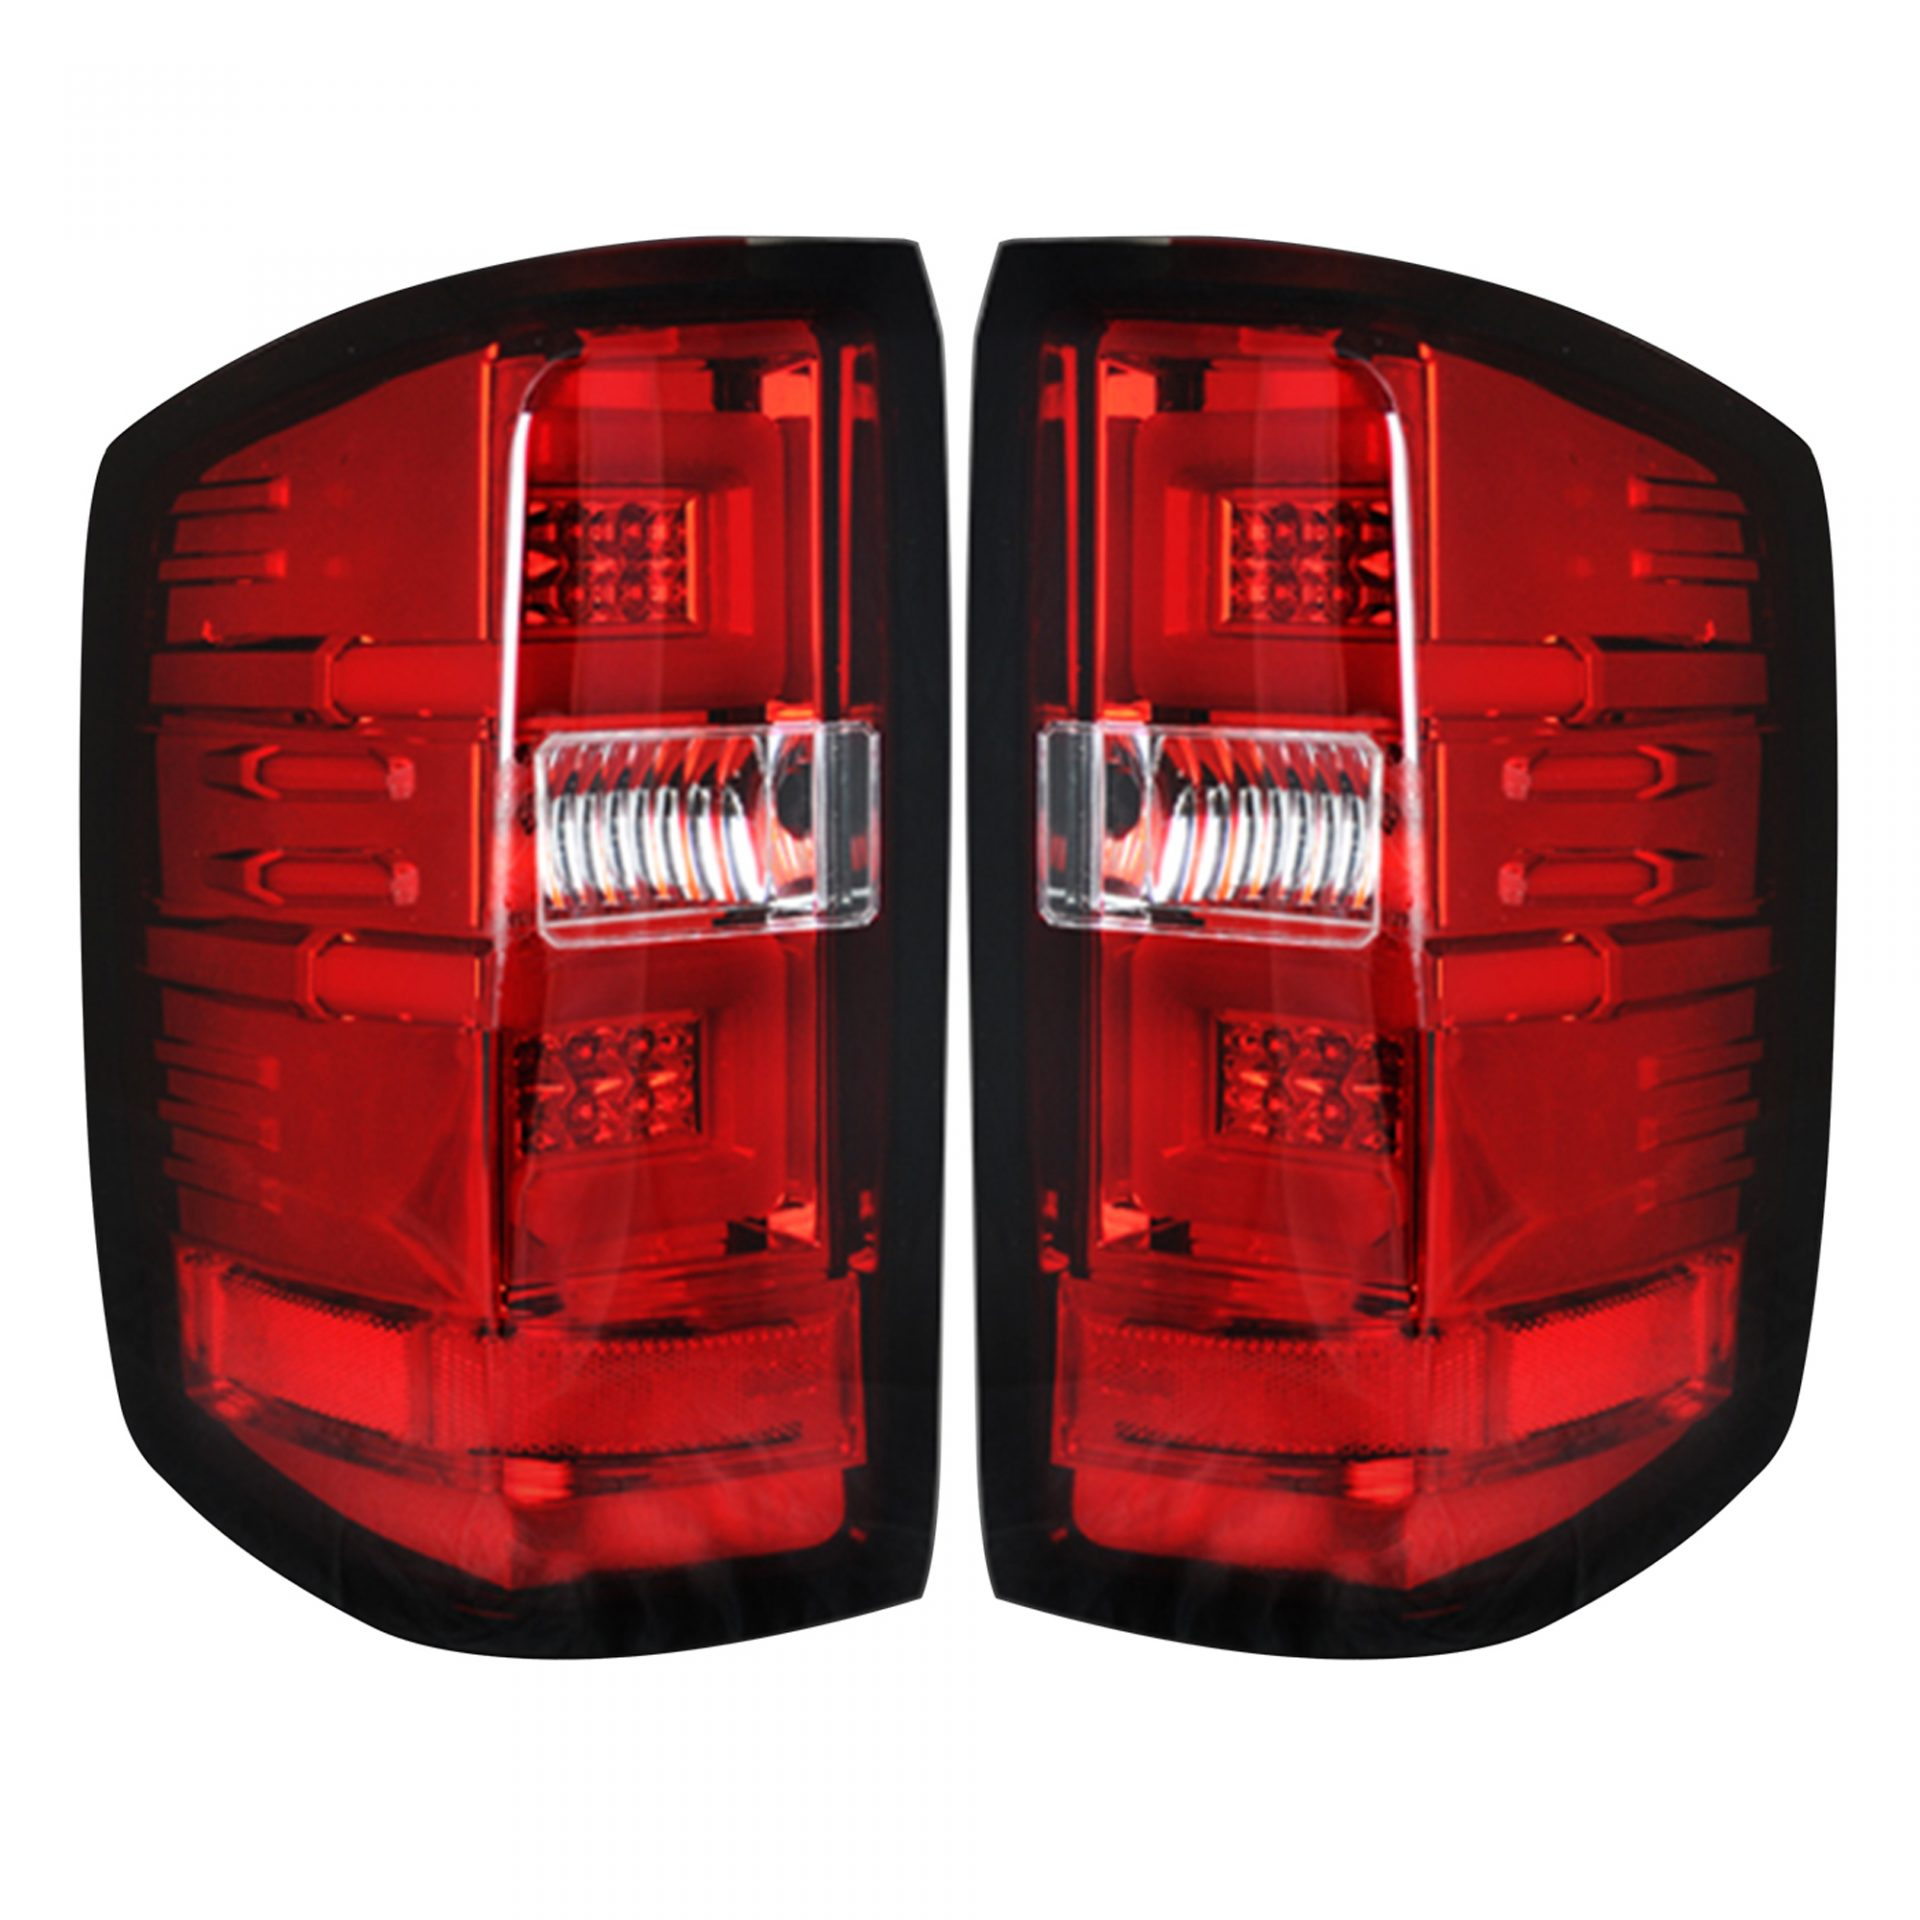 Led Brake Lights >> Recon 264297rd Chevy Silverado 16 18 1500 16 19 2500 3500 Replaces Factory Oem Led Tail Lights Only Also Fits Gmc Sierra 15 19 Dually Body Style